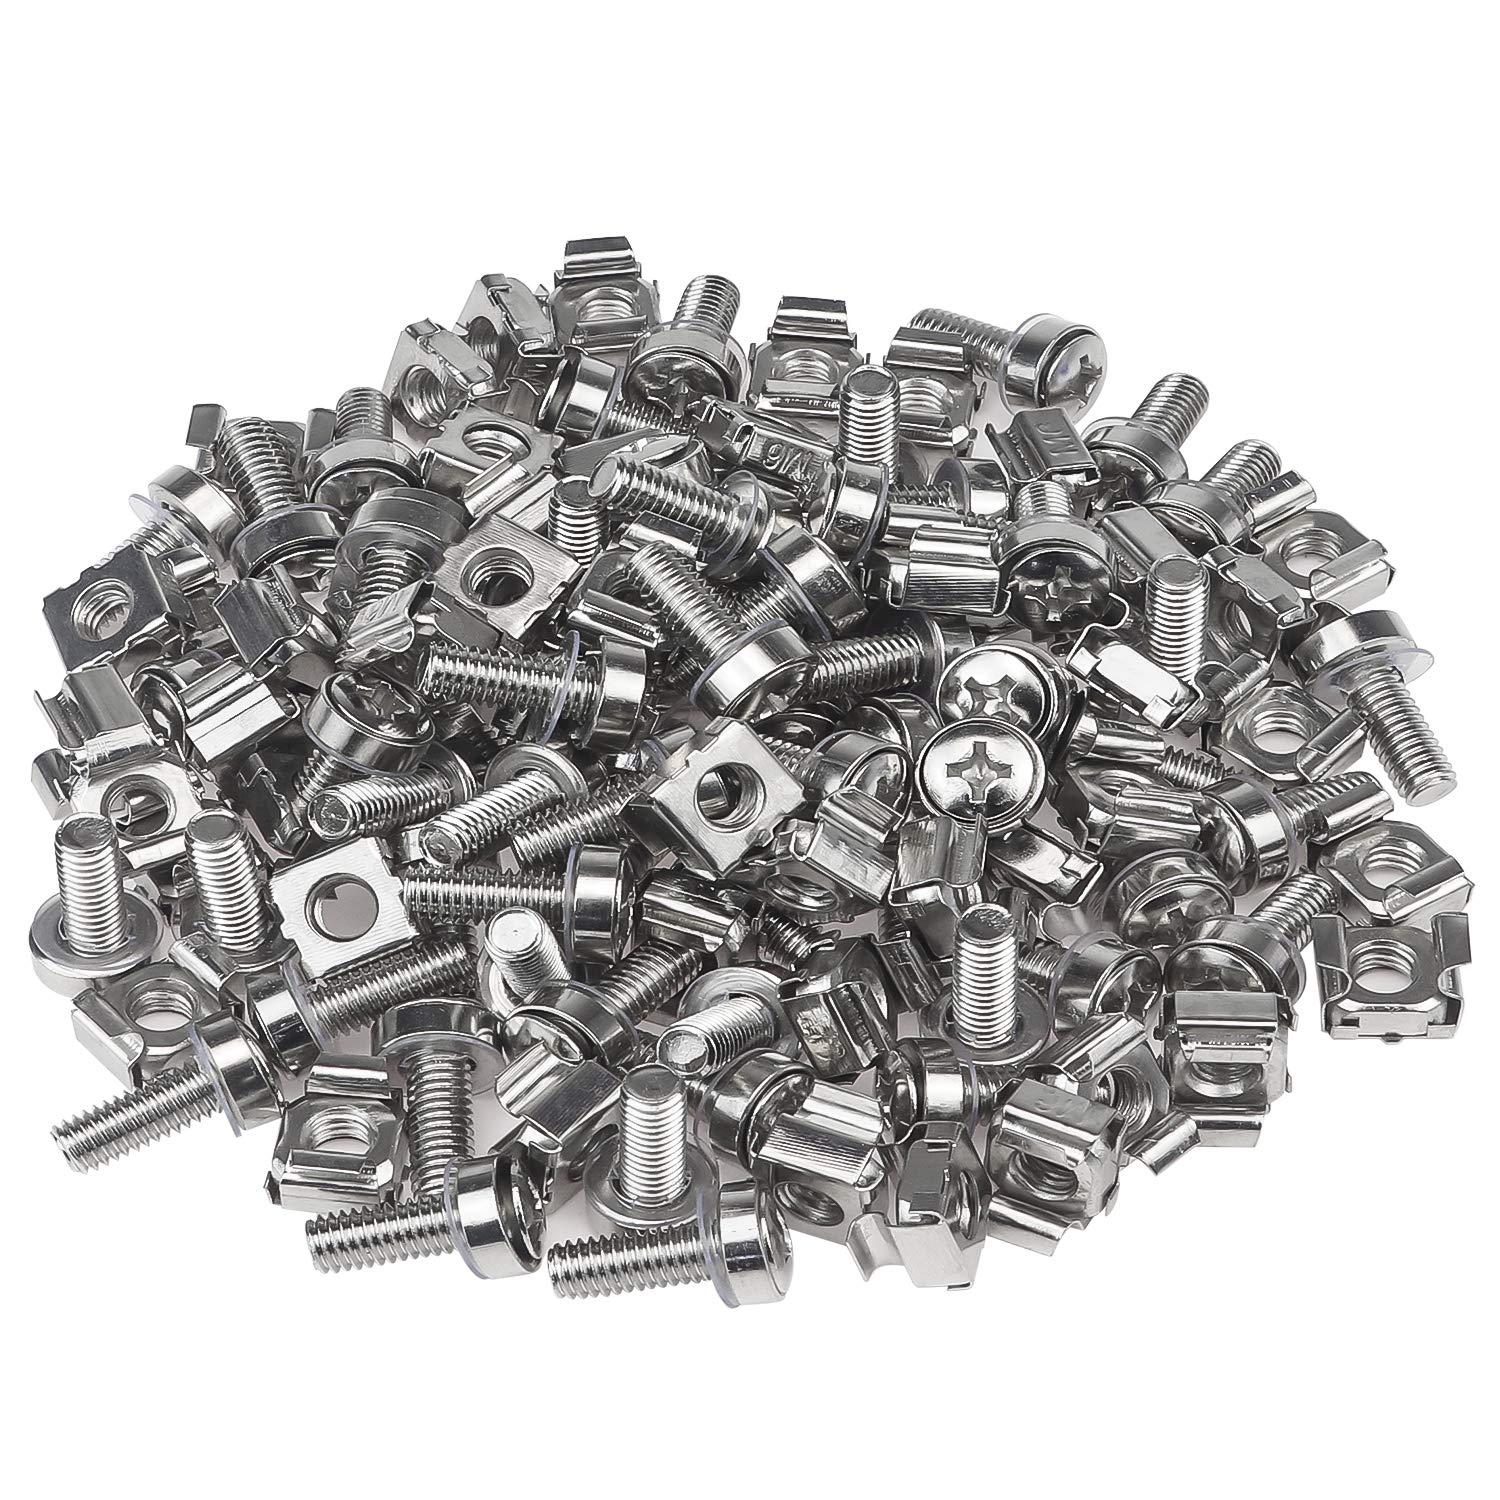 Rack Mount Server Shelves Favordrory Rack Mount Cage Nuts Screws and Washers for Rack Mount Server Cabinet Silver Routers M6 x 20mm